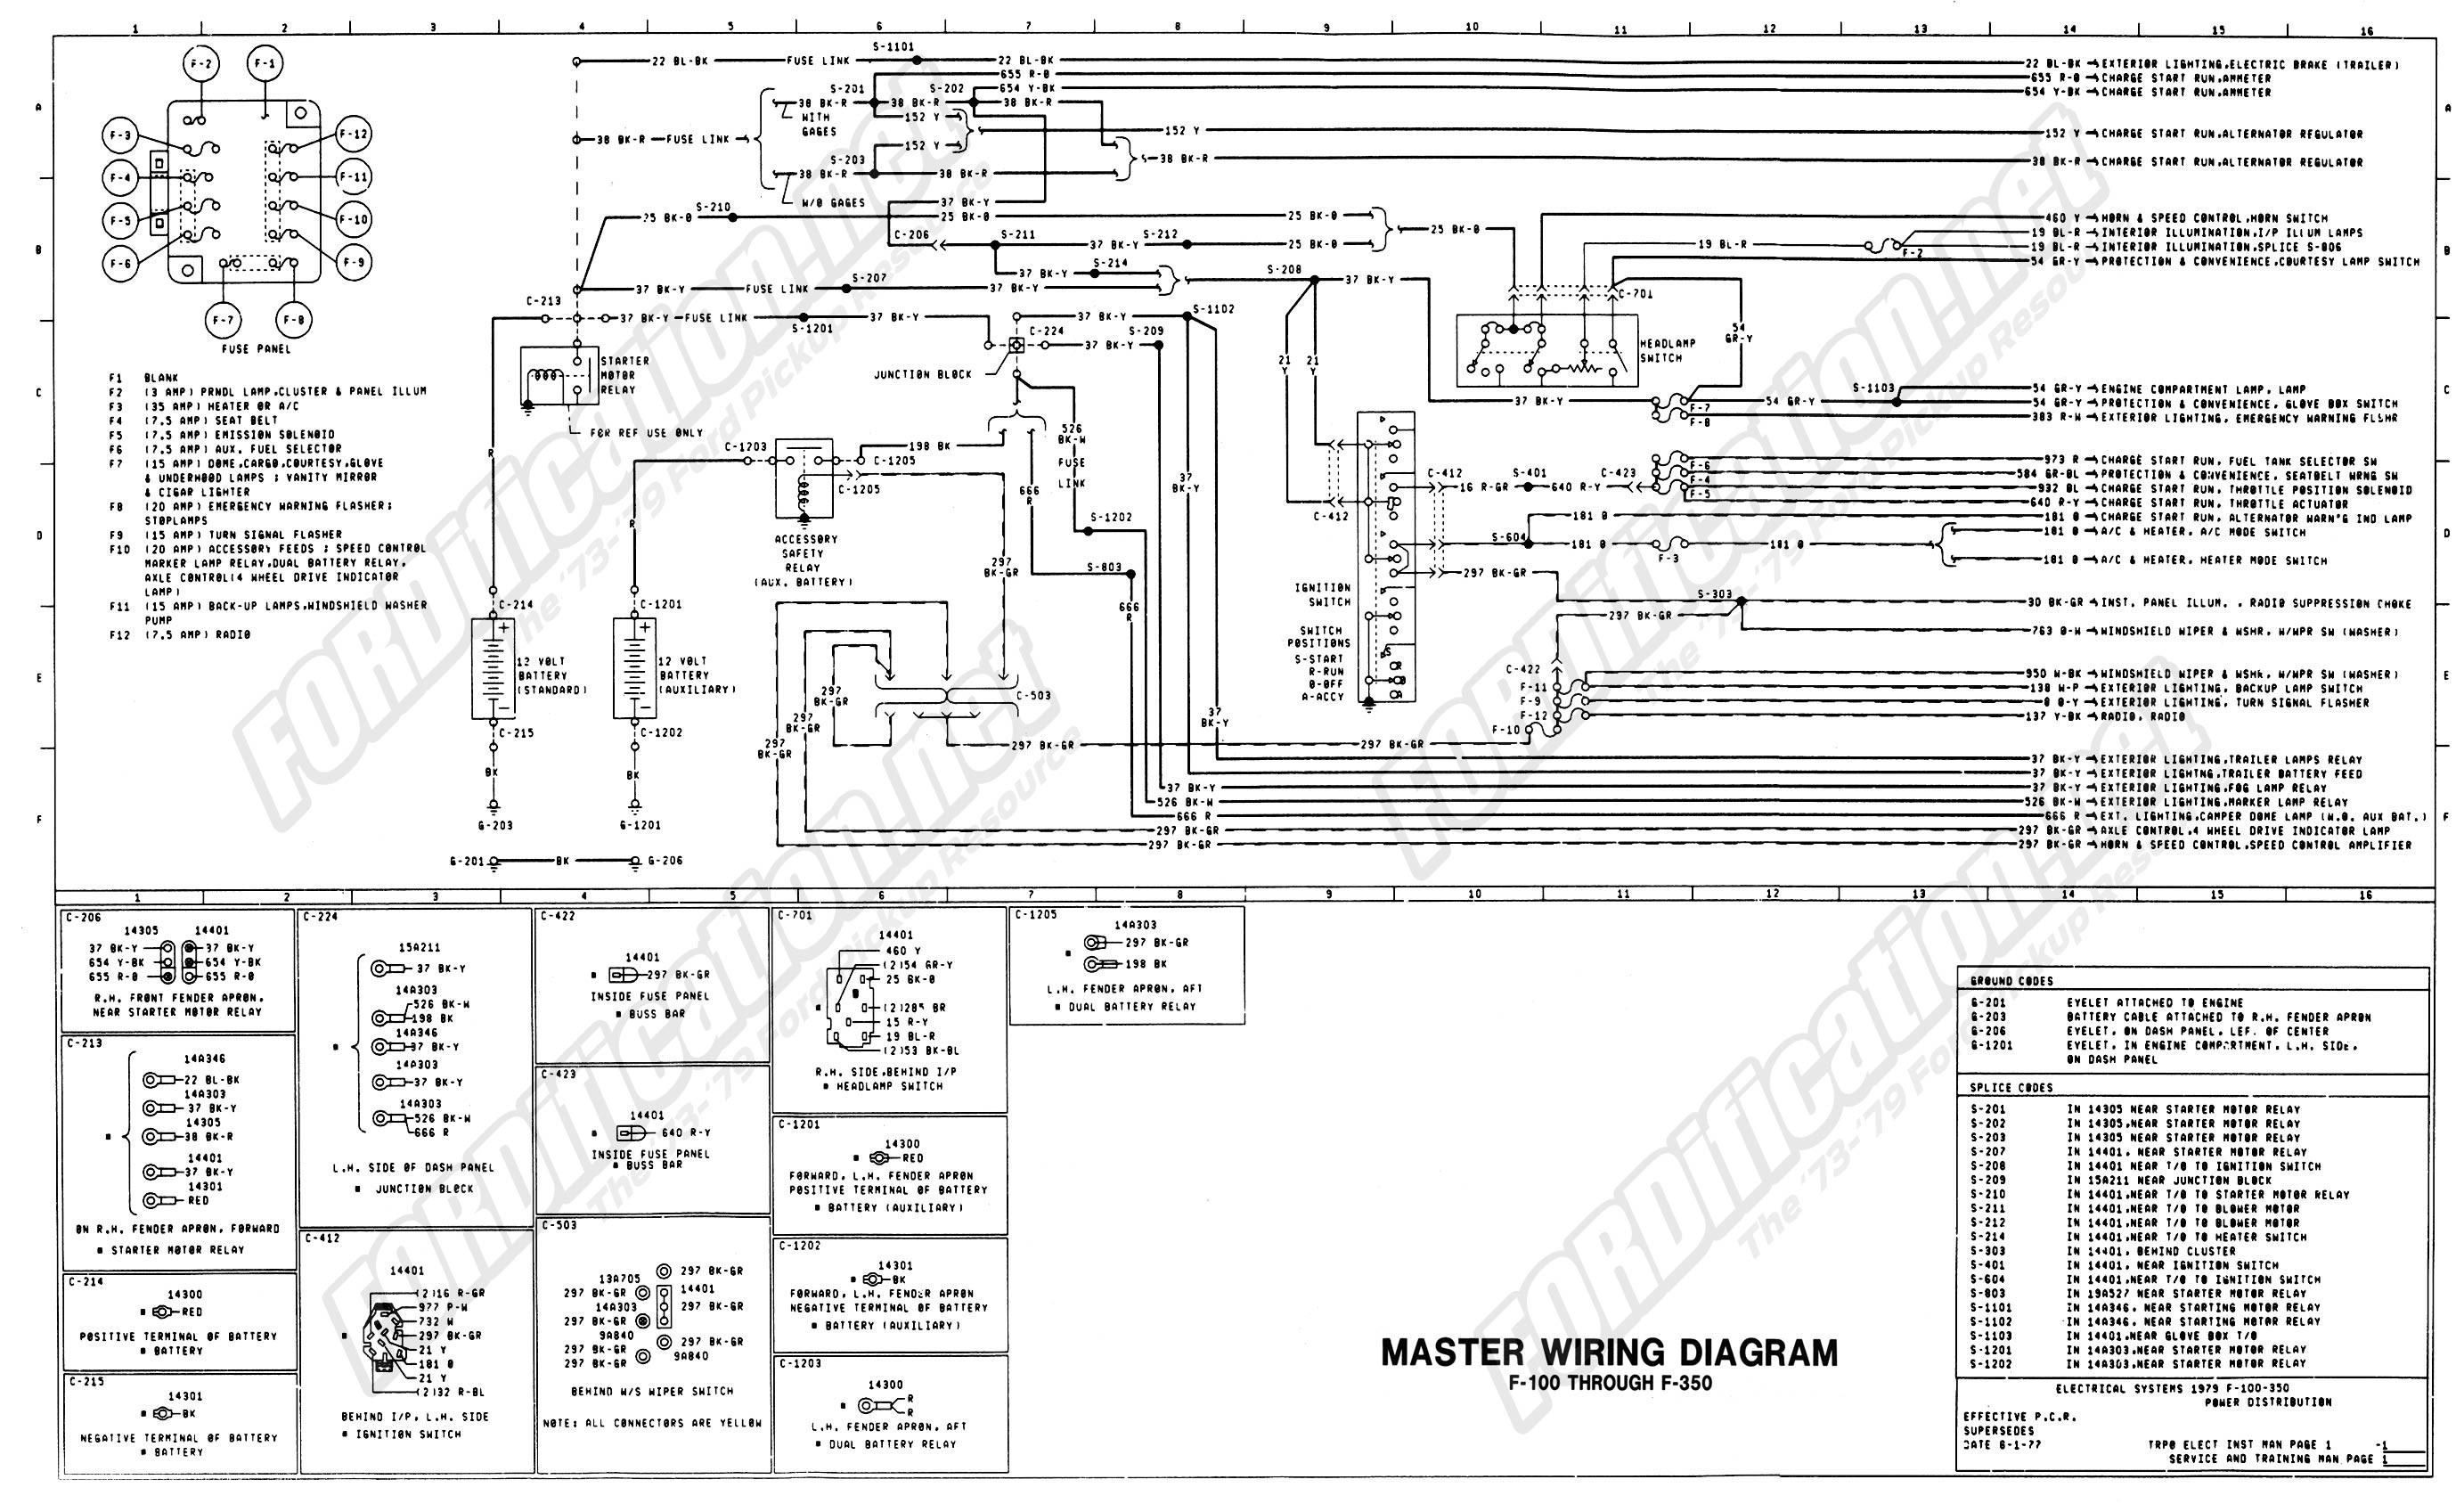 72 Ford Truck Wiring Diagrams Trusted Wiring Diagram 61 F100 Wiring Diagram  1972 Ford F100 Starter Wiring Diagram